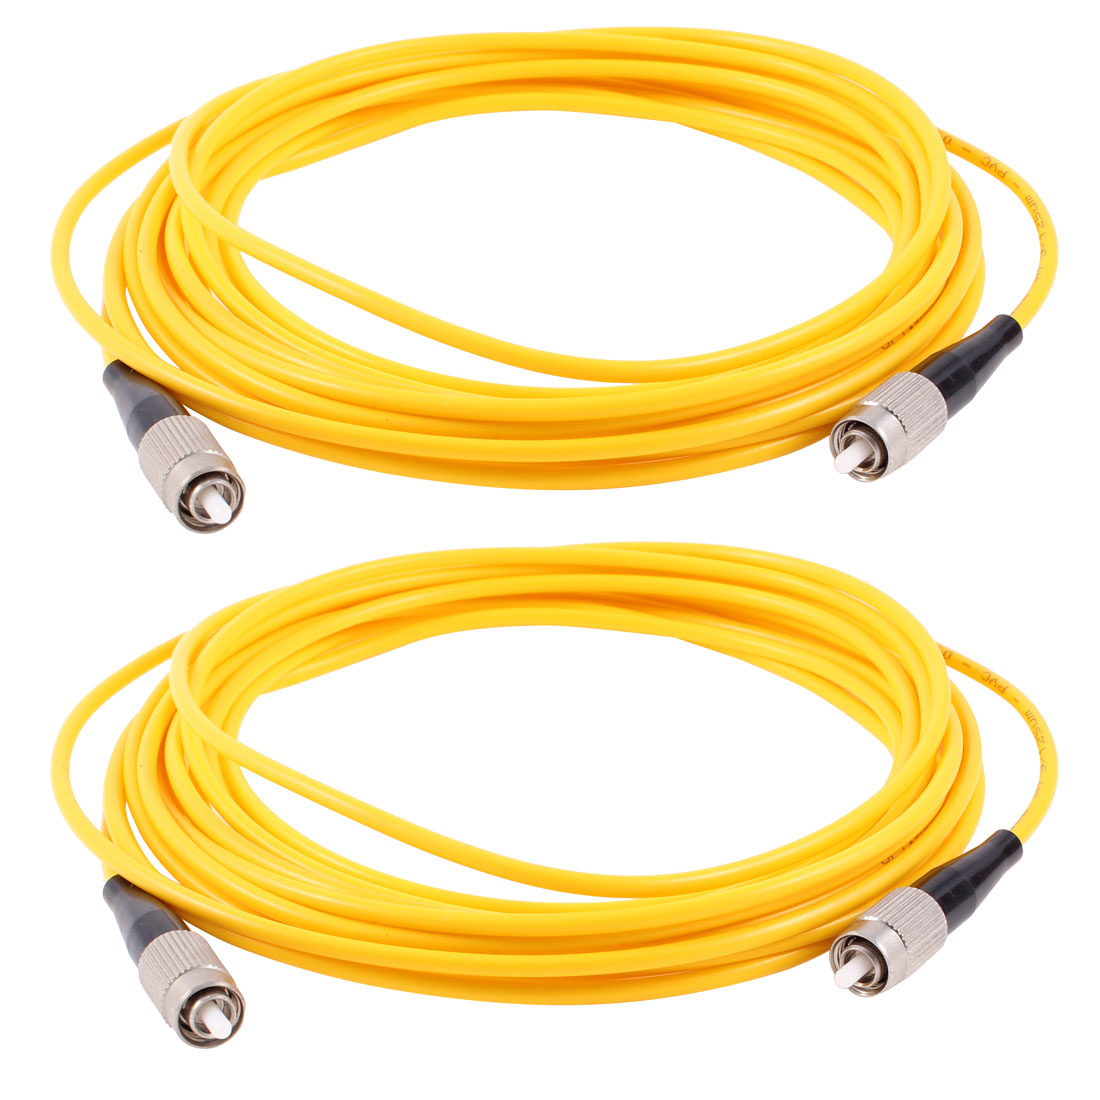 2 Pcs Simplex Singlemode FC to FC Fiber Optic Patch Jump Cable Yellow 3 Meters